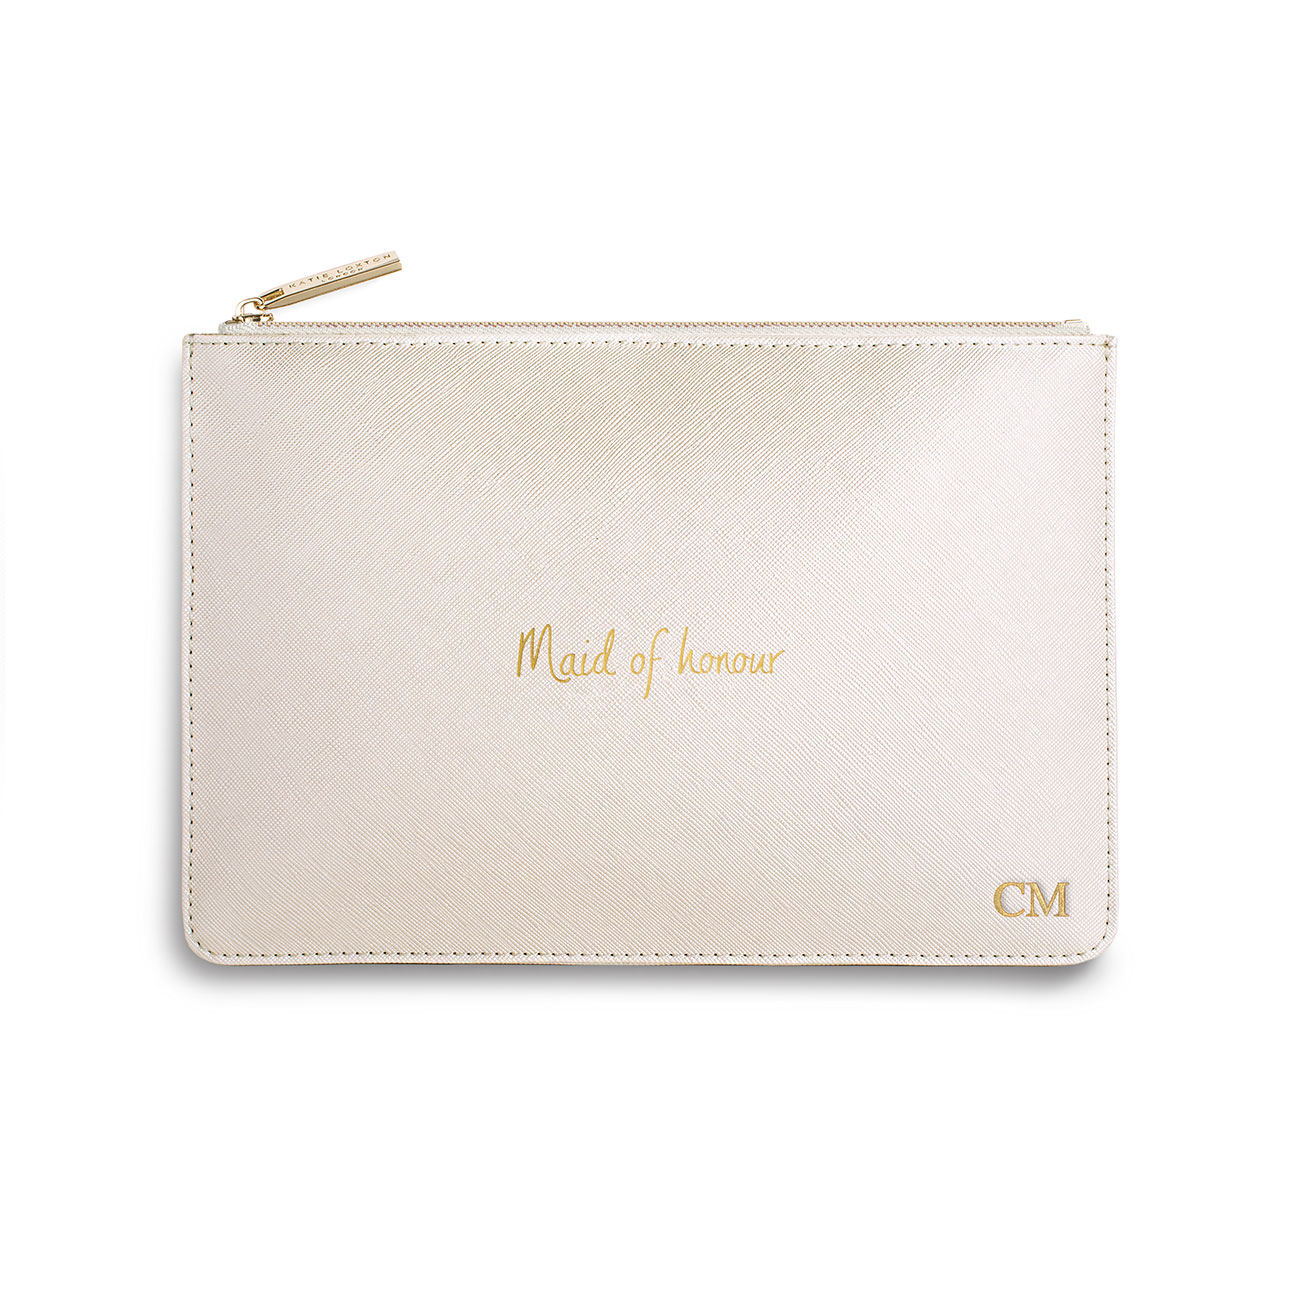 Perfect Pouch | Maid Of Honour